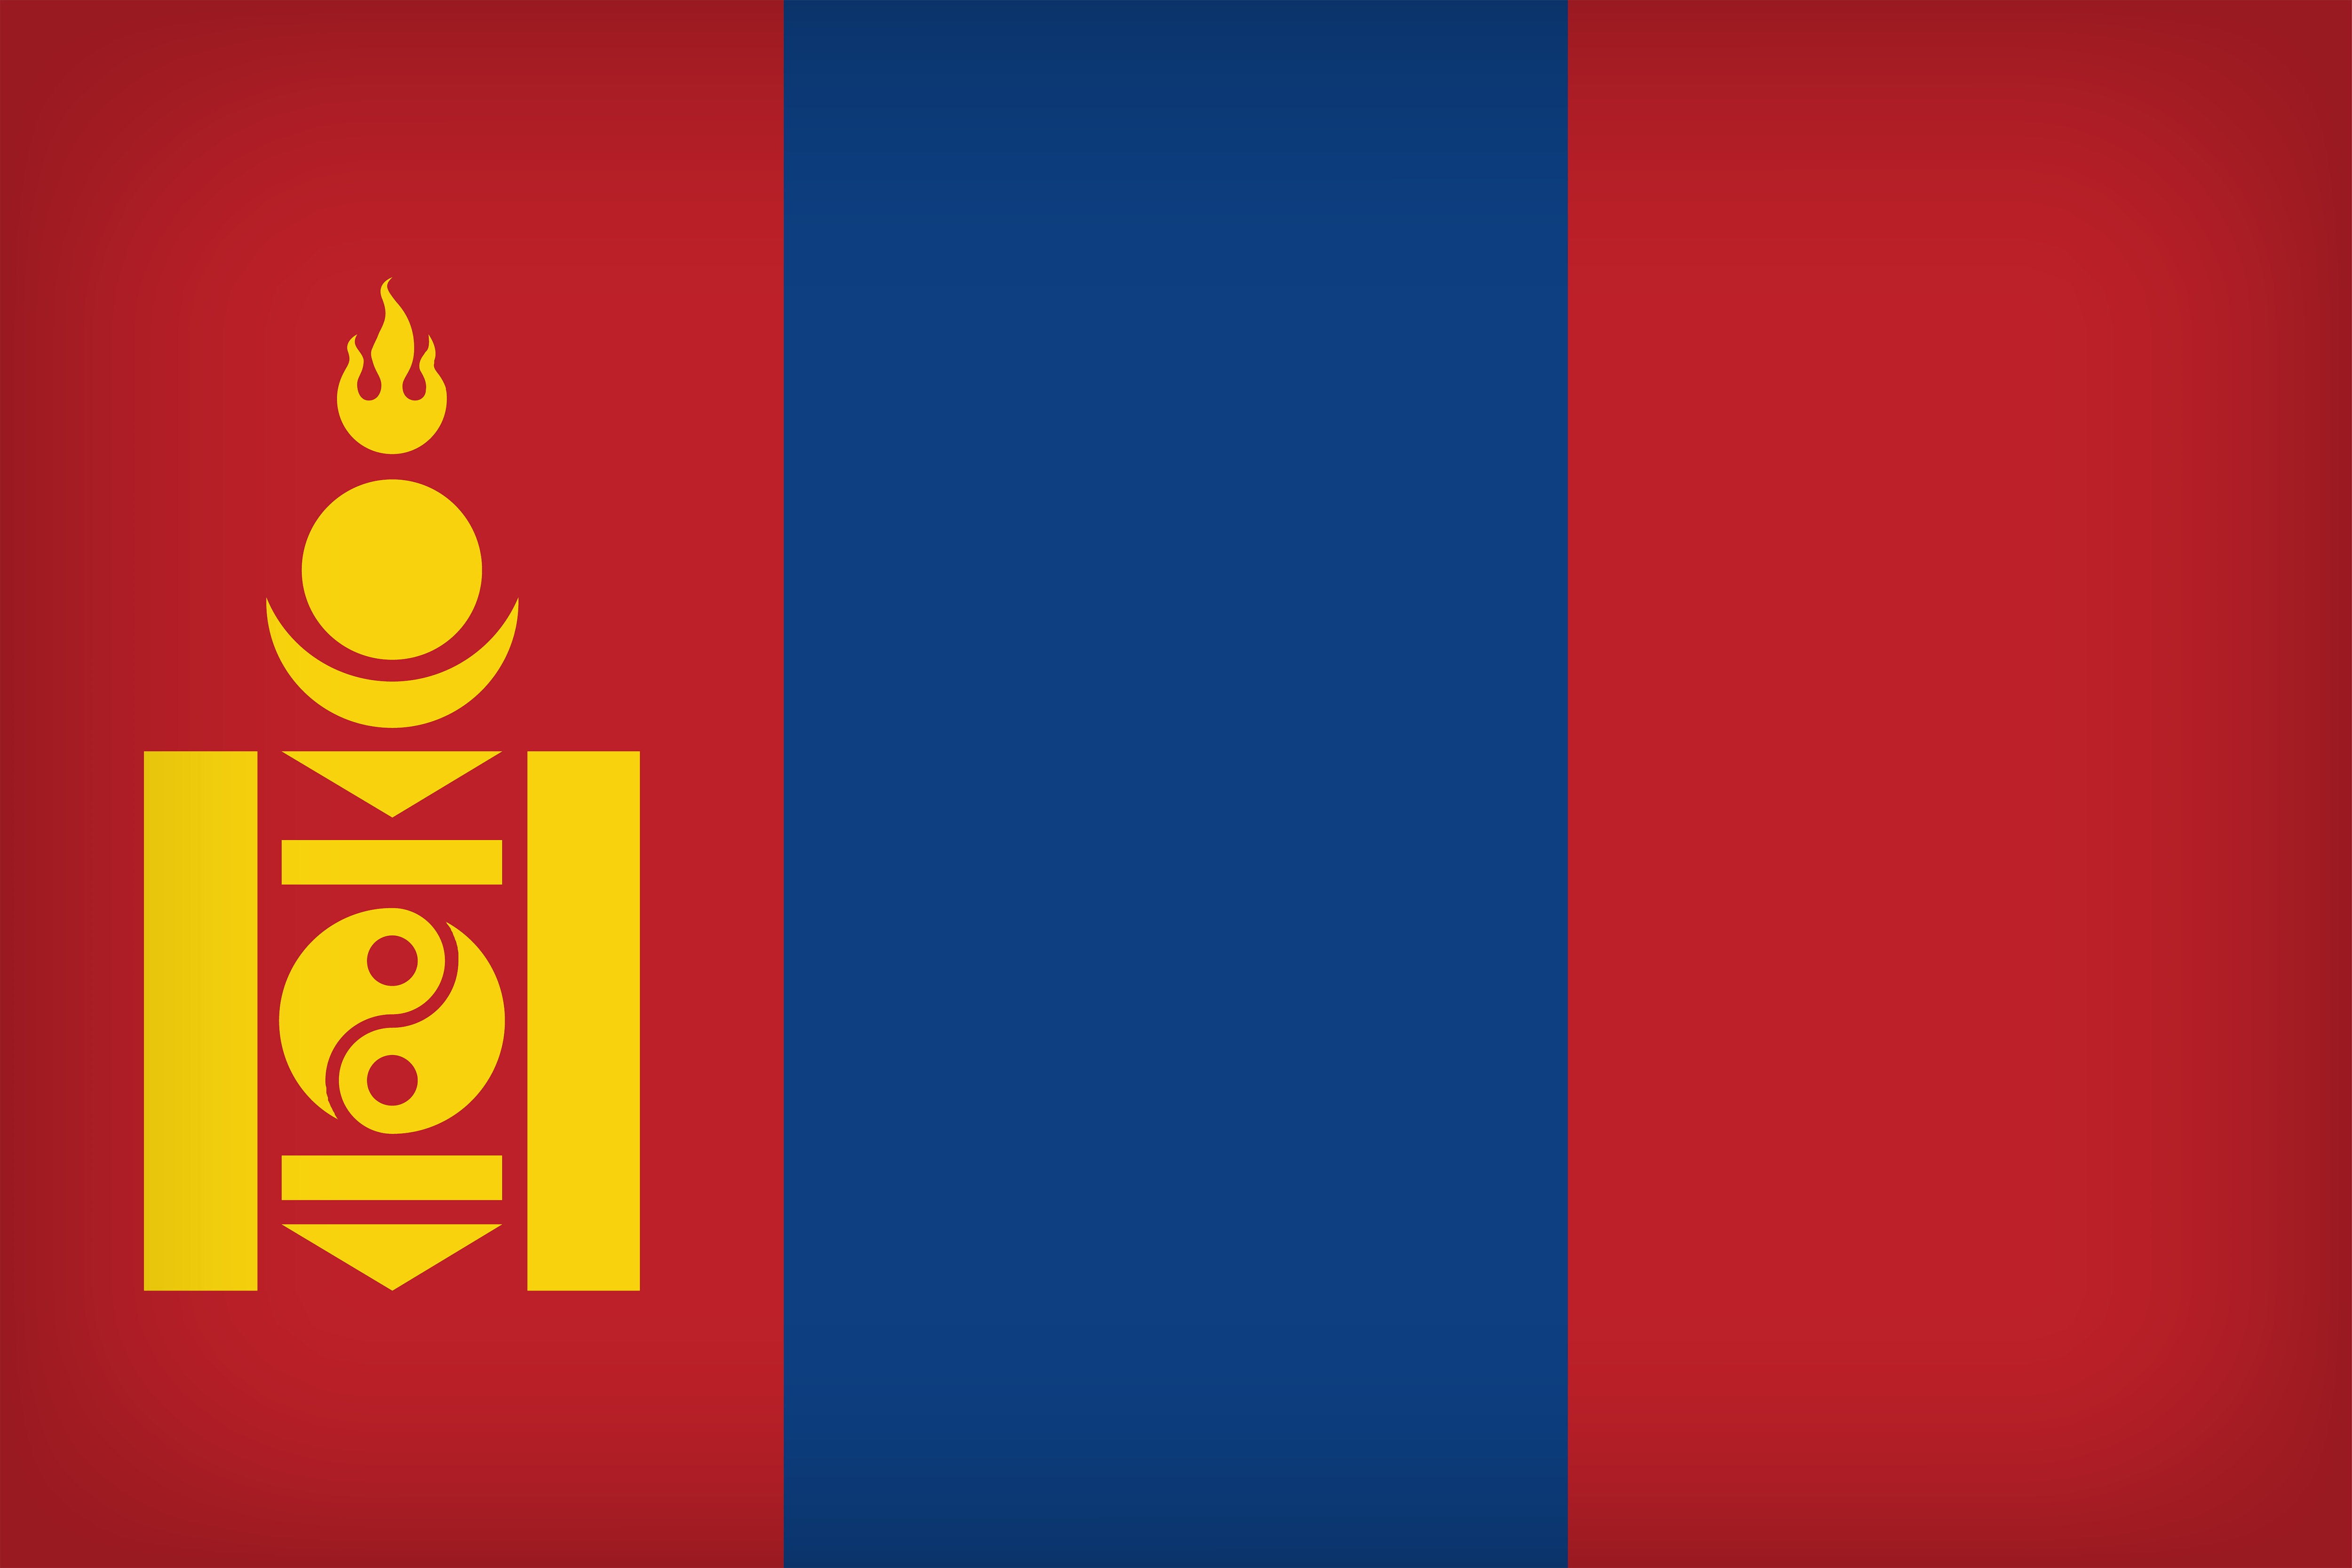 File:Mongolia flag. Wikimedia Commons